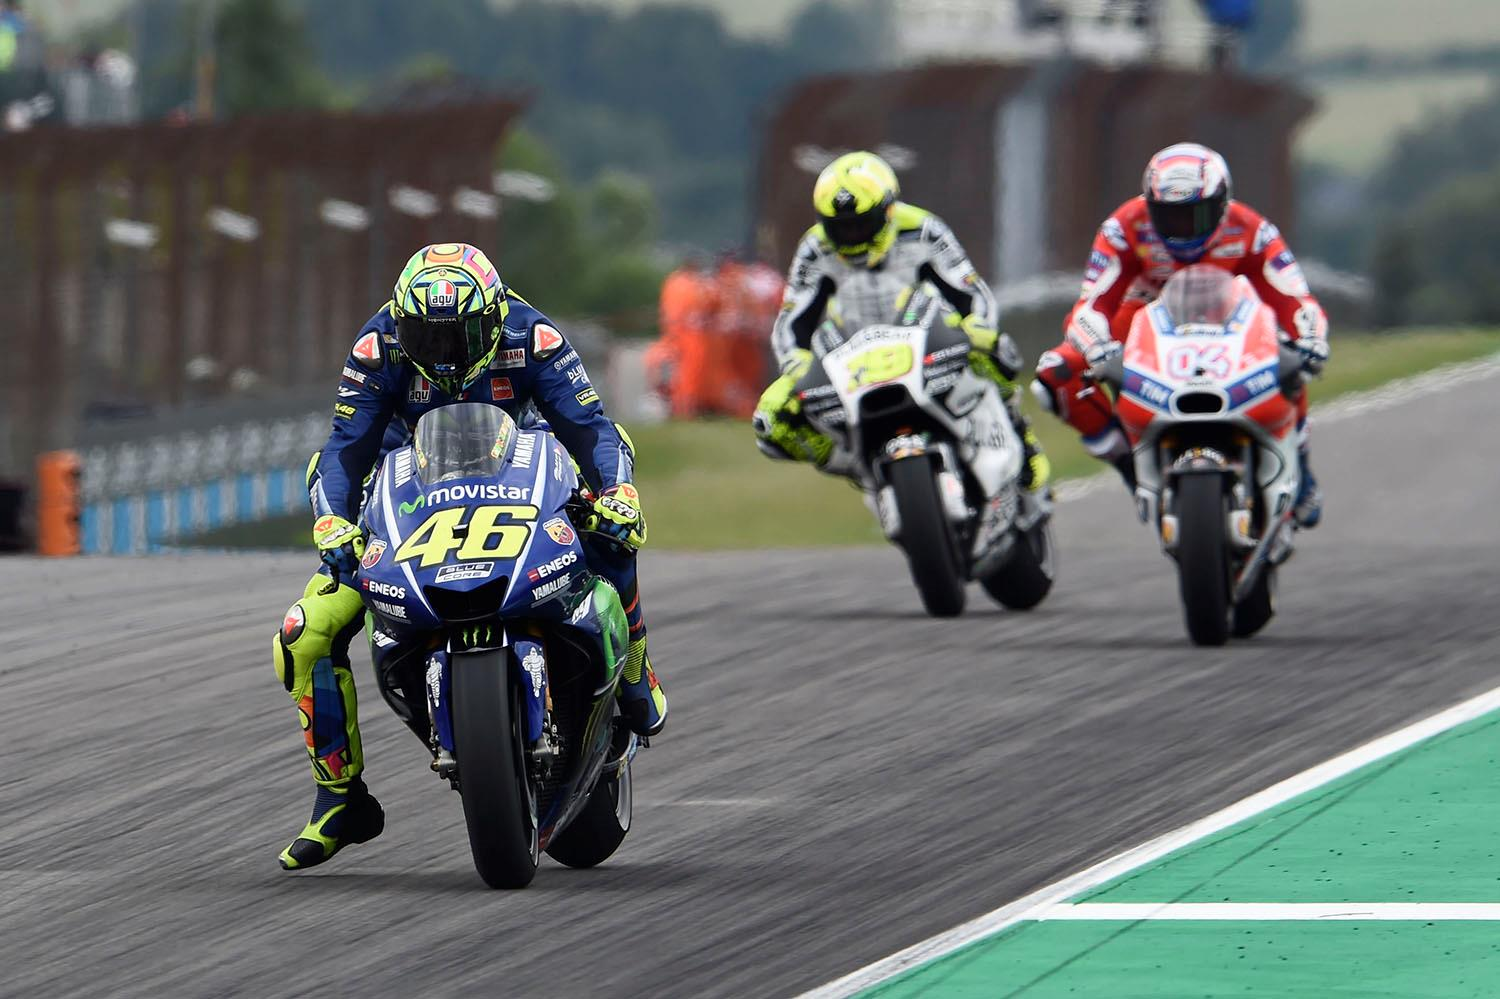 MotoGP Brno: Marquez heads Rossi to take pole